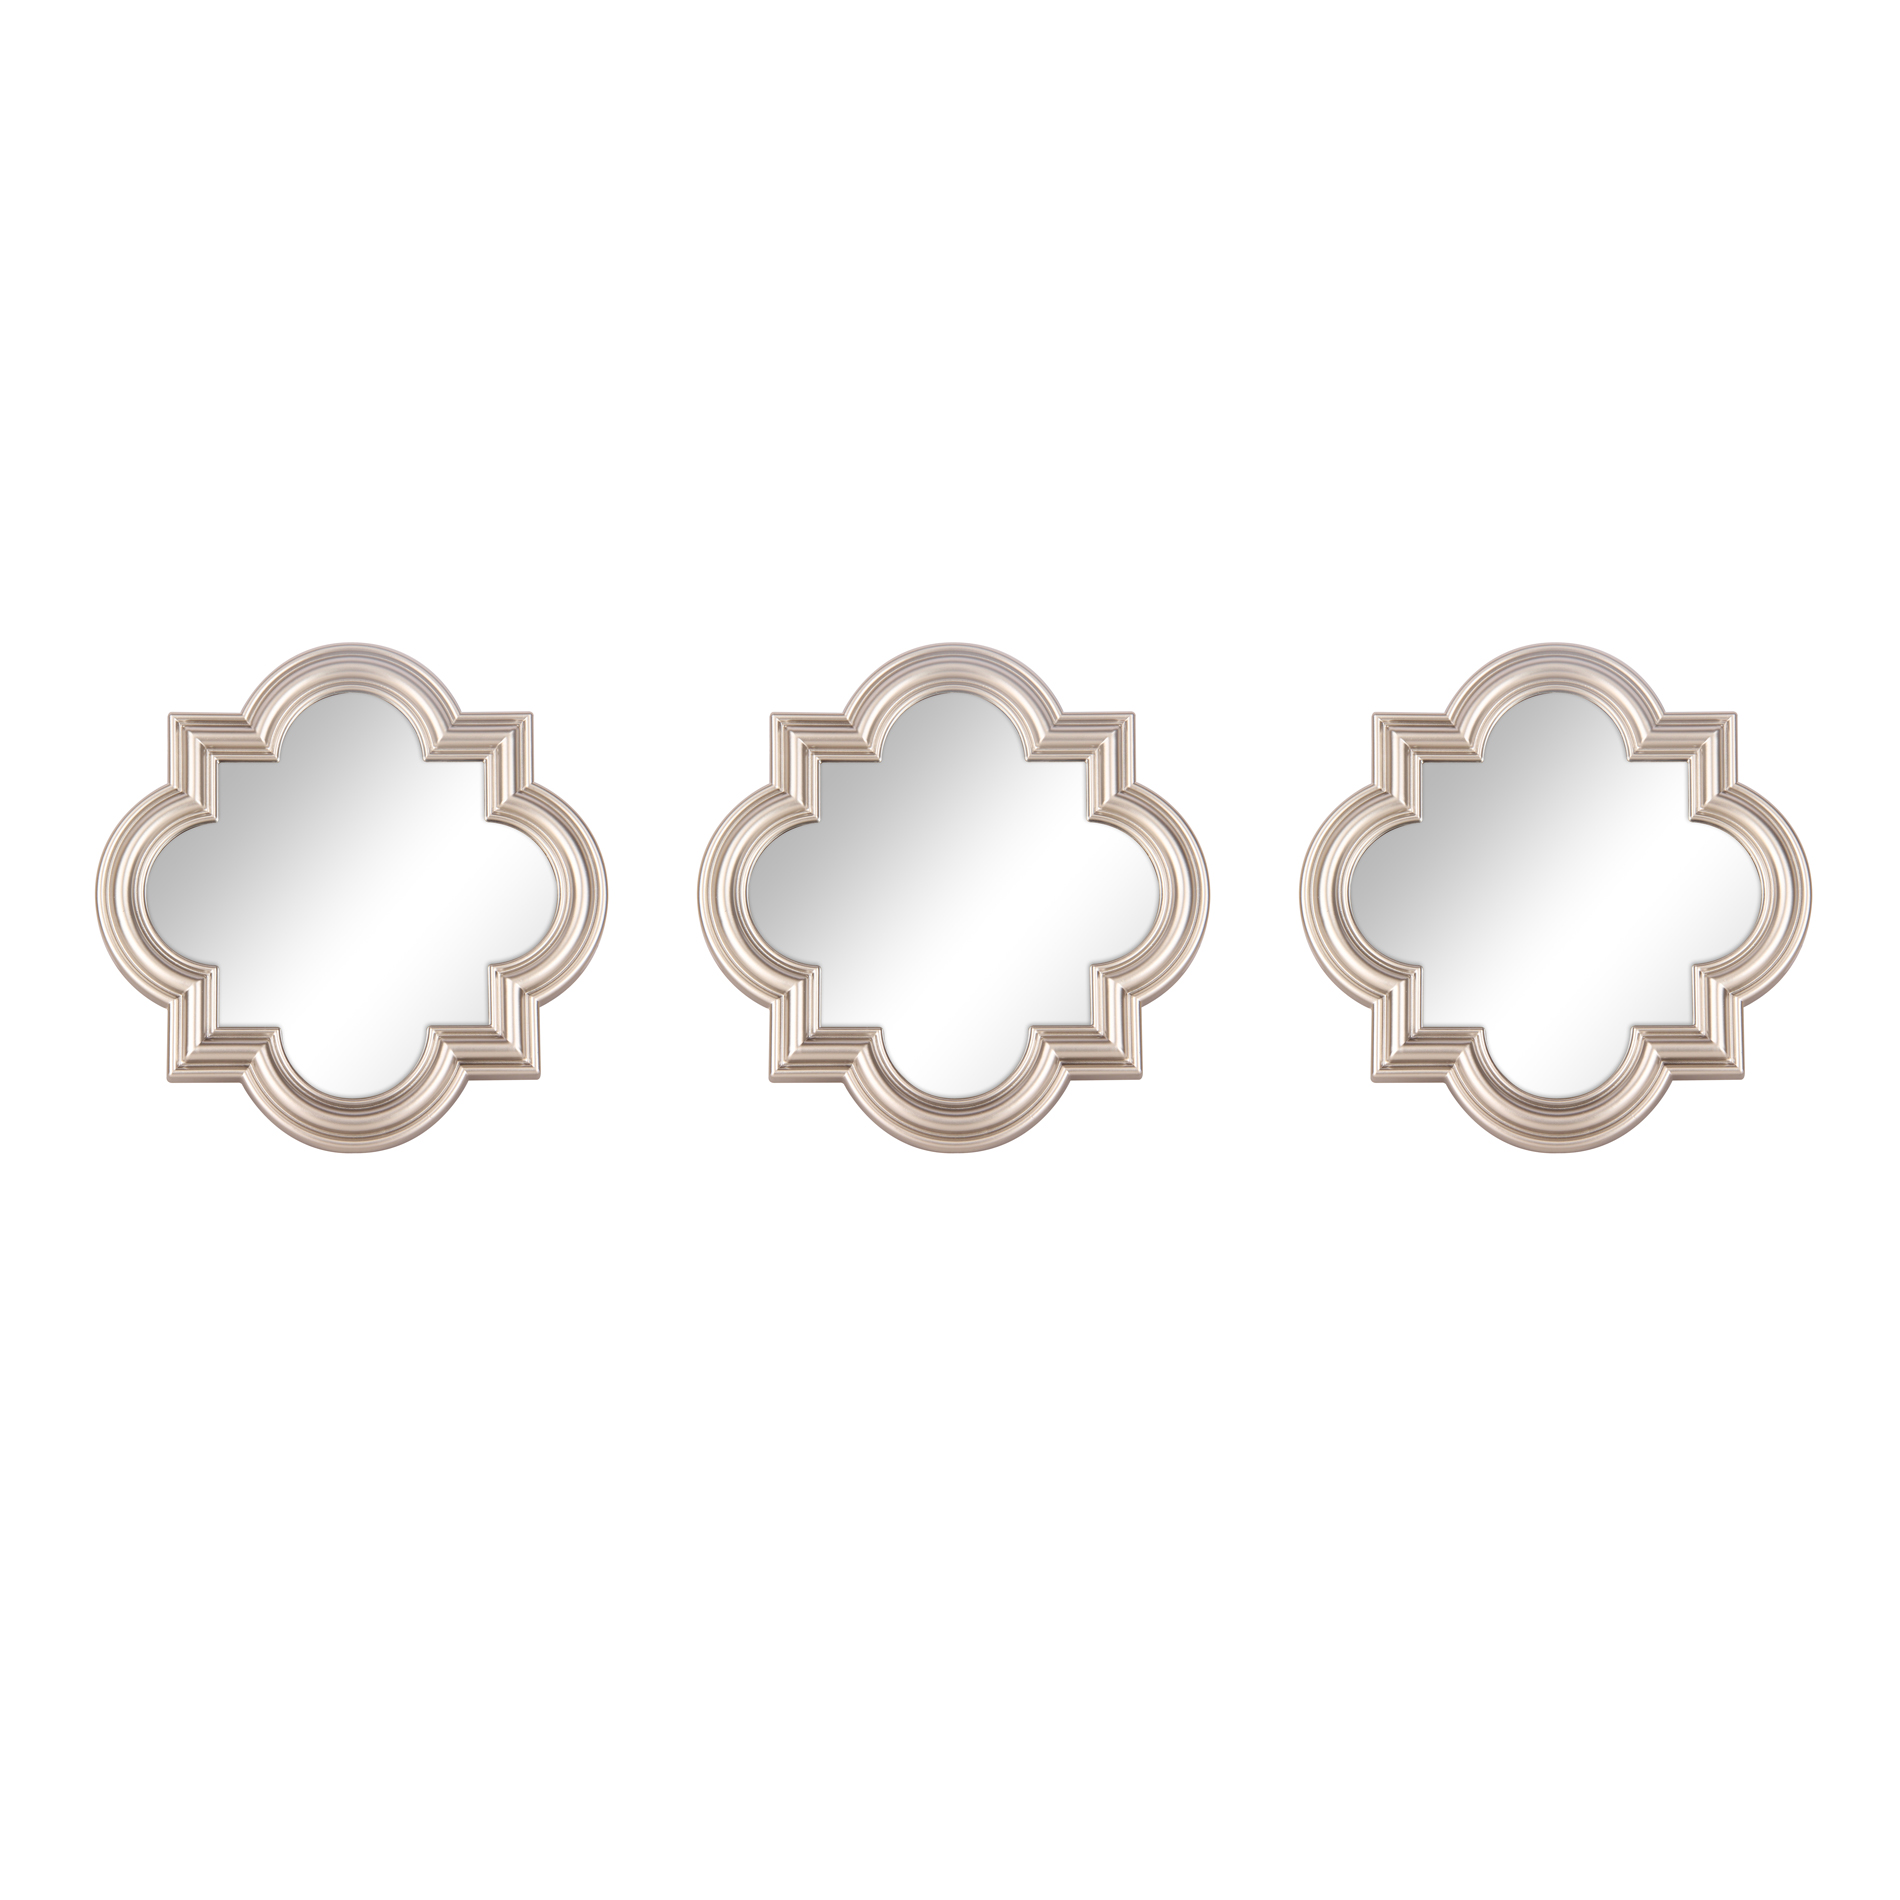 Add Glam Shimmer To Your Home With A 3 Piece Mirror Set The Trendy Quatrefoil Frames In Silver Color Bring Inte Quatrefoil Wall Mirrors Set Stylish Wall Decor